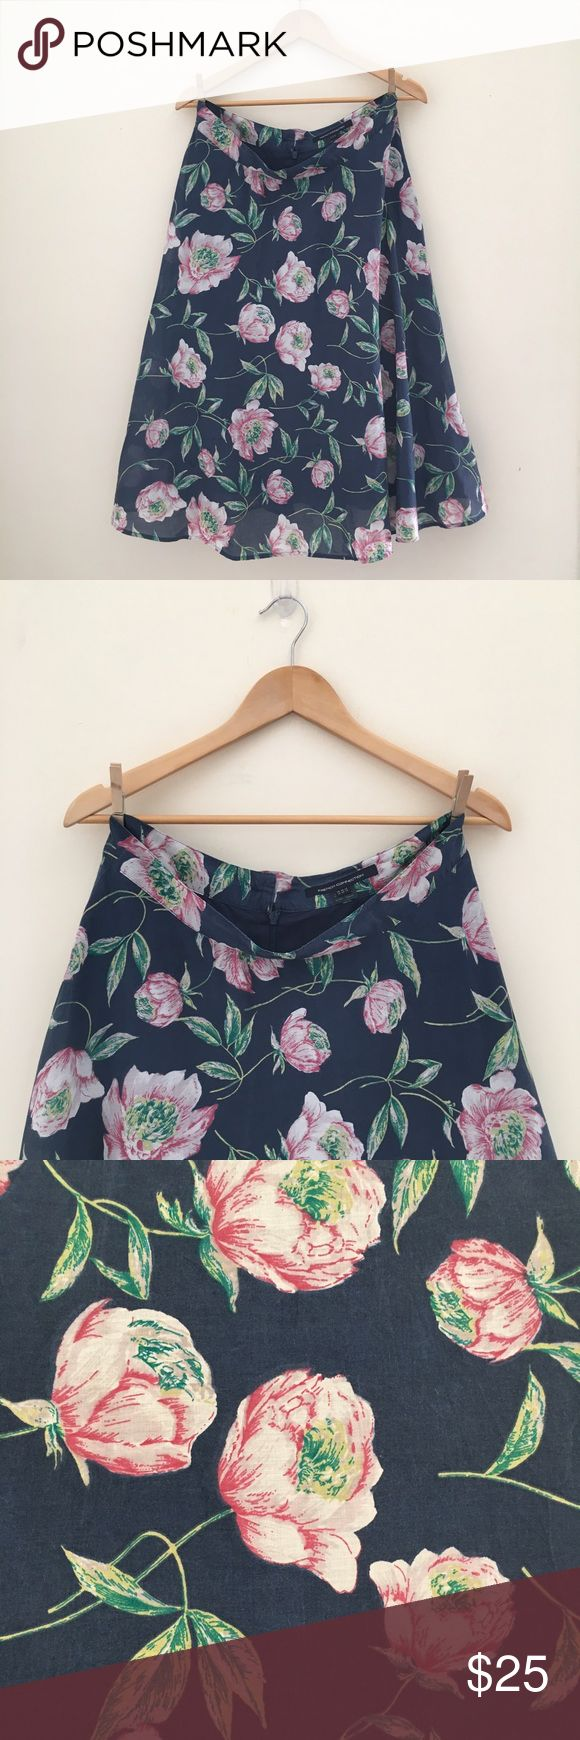 French connection floral maxi skirt French connection floral maxi skirt. Size 10. Excellent condition no sign of wear or stains. Will consider offers or bundle for a discount French Connection Skirts Maxi